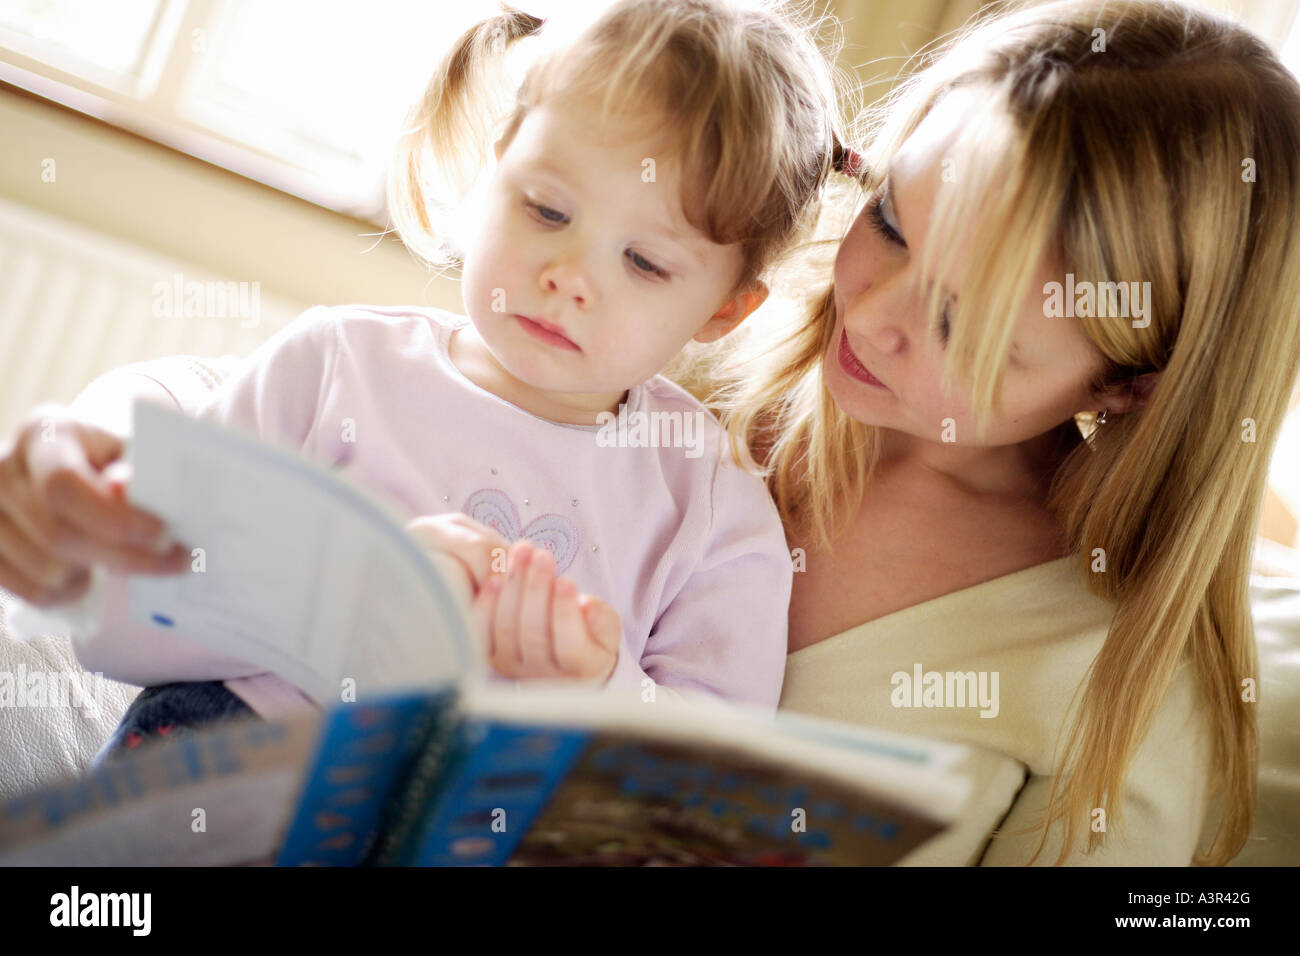 Mother reading with daughter - Stock Image